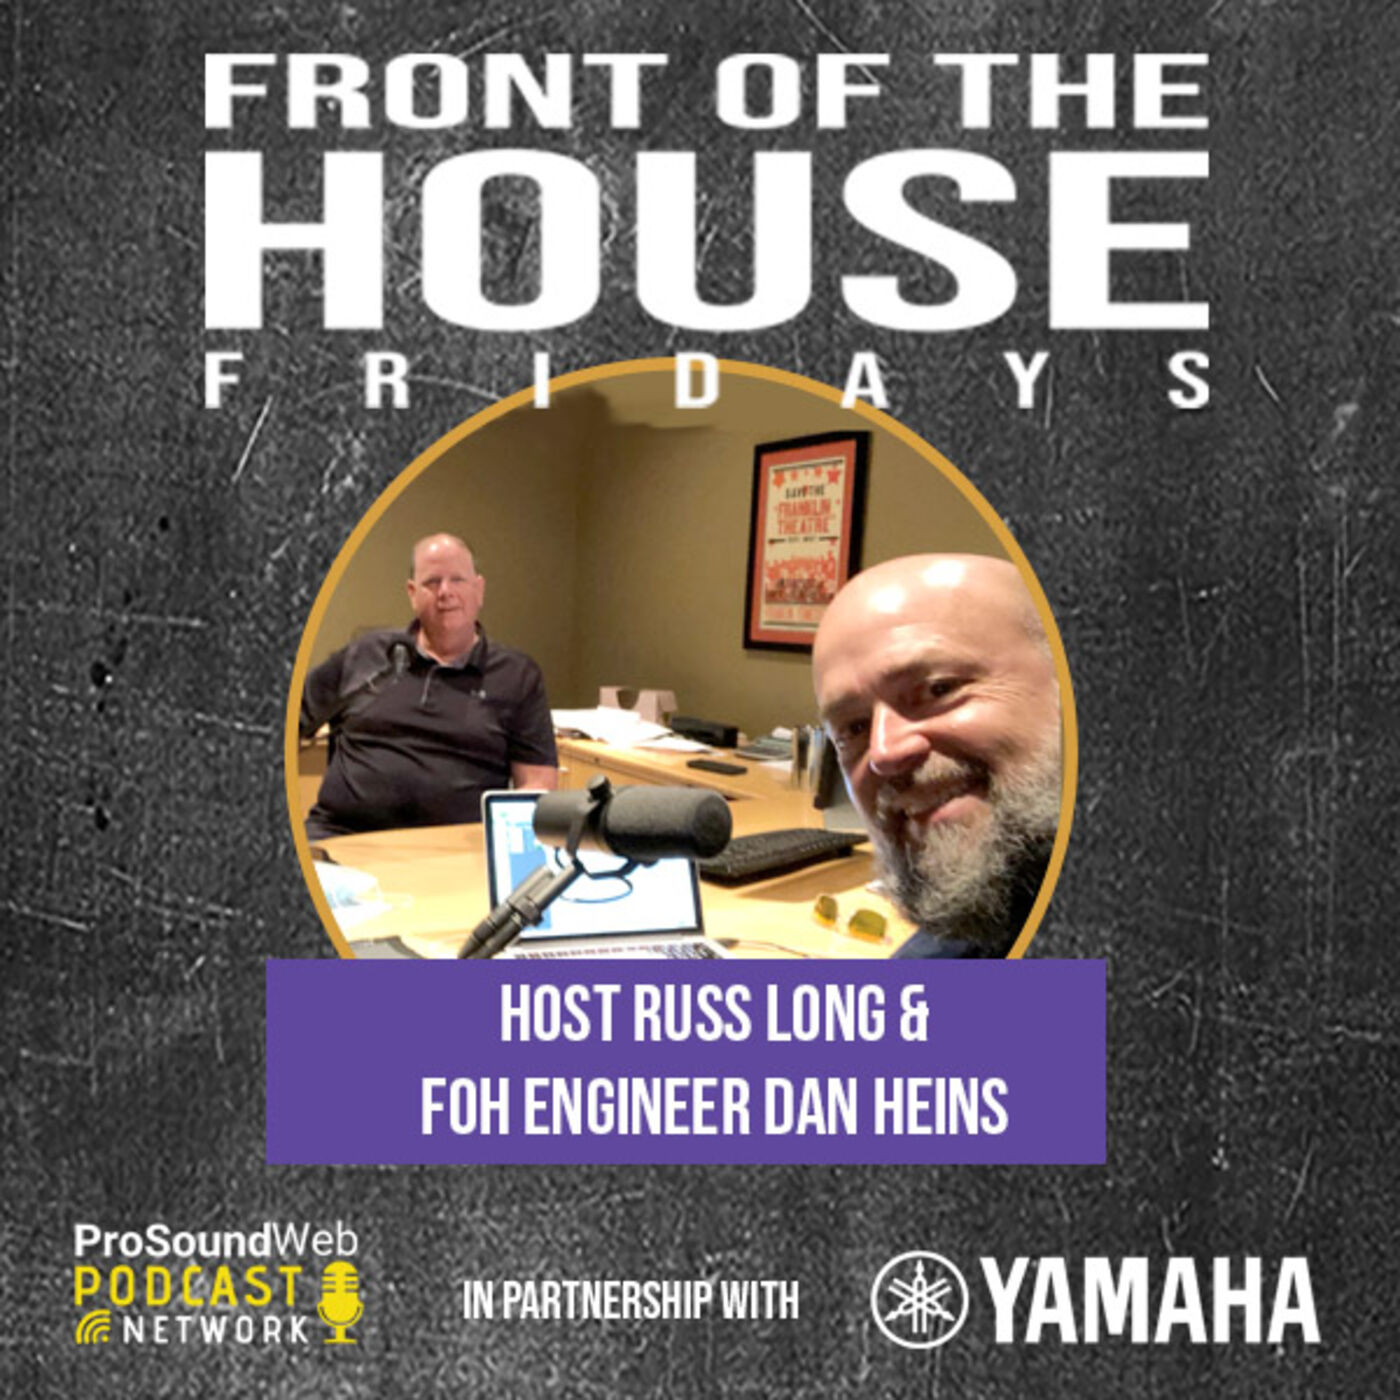 Episode 7: FOH Enginer Dan Heins